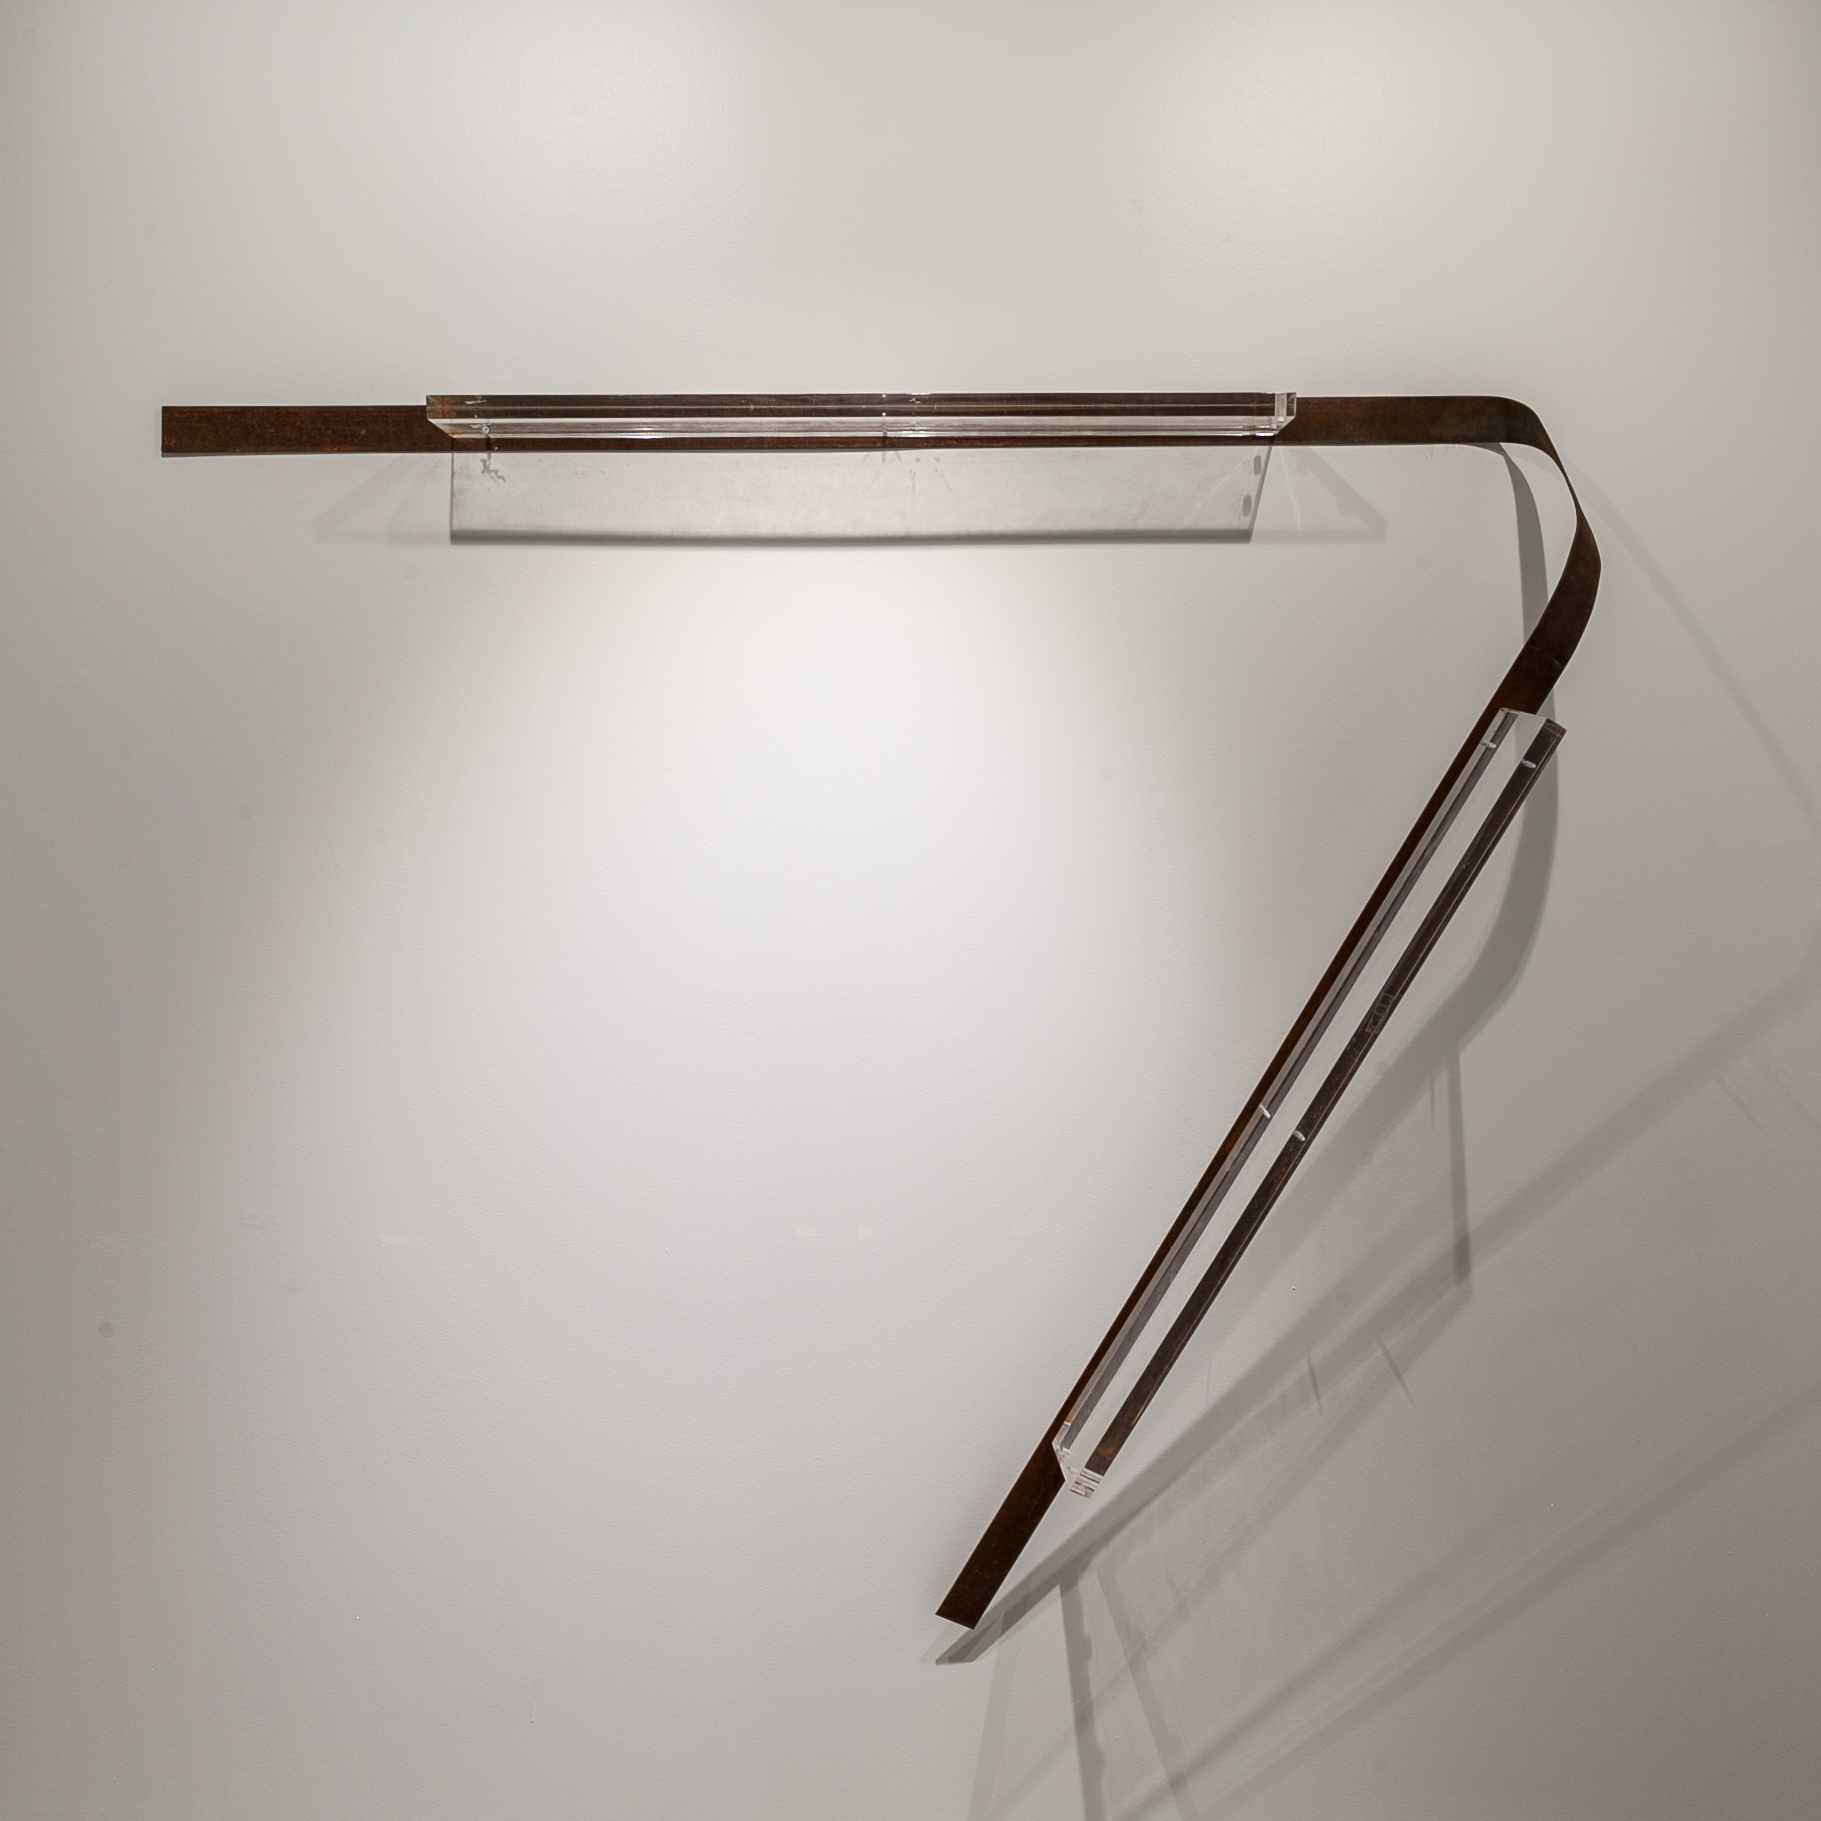 "Tracy Treadwell (Memphis, TN)   An Avenue , 2018  Medium: Steel strap and Lucite shelves  Dimensions: 60x 68x12 inches   ""Tracy Treadwell's work bridges the familiar and the suggestive through assemblage of found and fabricated objects and through her exploration of memory as it fades and evolves over time. In an attempt to decipher and acknowledge her own history, Treadwell taps into the pathways that determine a variety of relationships: how object mass relates to body mass, how materials extend themselves to the human anatomy, and how color, object, and space trigger memory.""  (Artist Statement)"